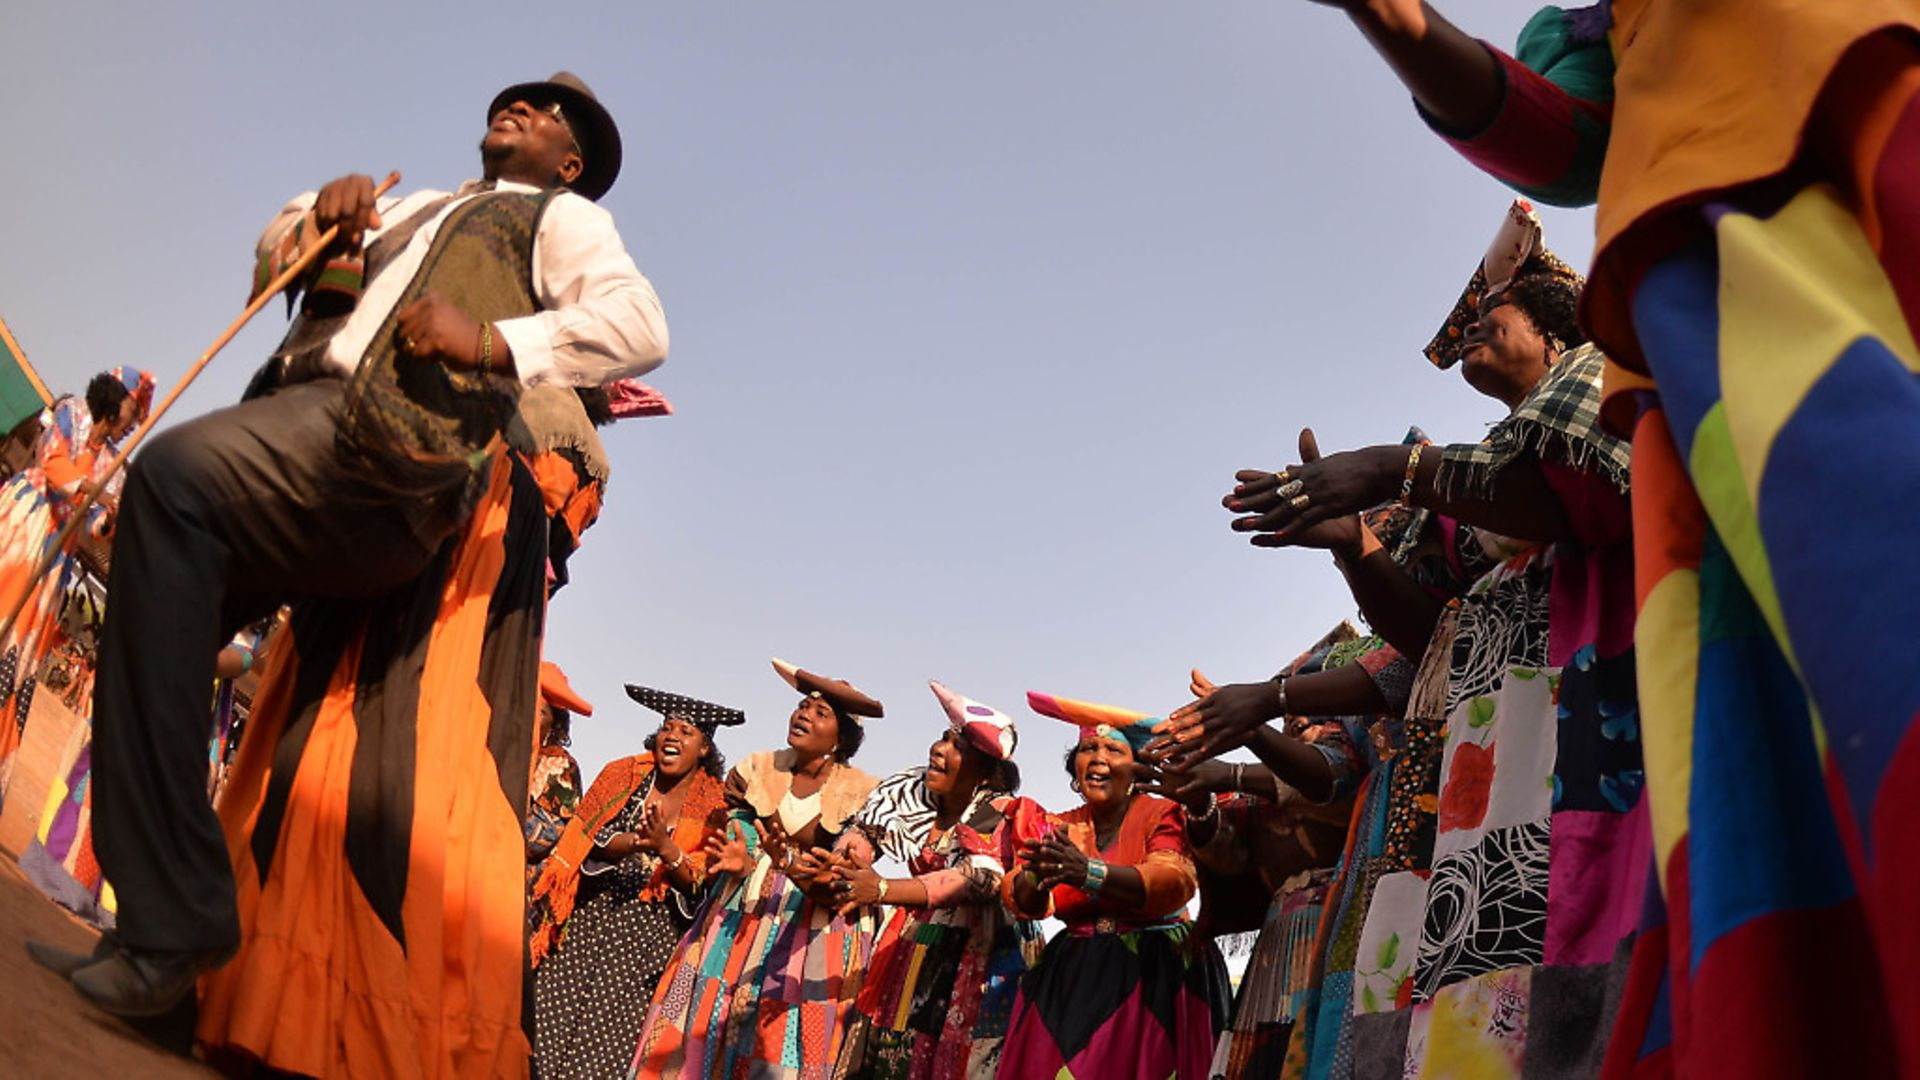 Member of the cultural group Herero perform during the 17th Kuru Festival in Ghanzi, on August 29, 2015. The Kuru festival mainly features the San dance and culture in Botswana. AFP PHOTO/MONIRUL BHUIYAN        (Photo credit should read Monirul Bhuiyan/AFP/Getty Images) - Credit: AFP/Getty Images